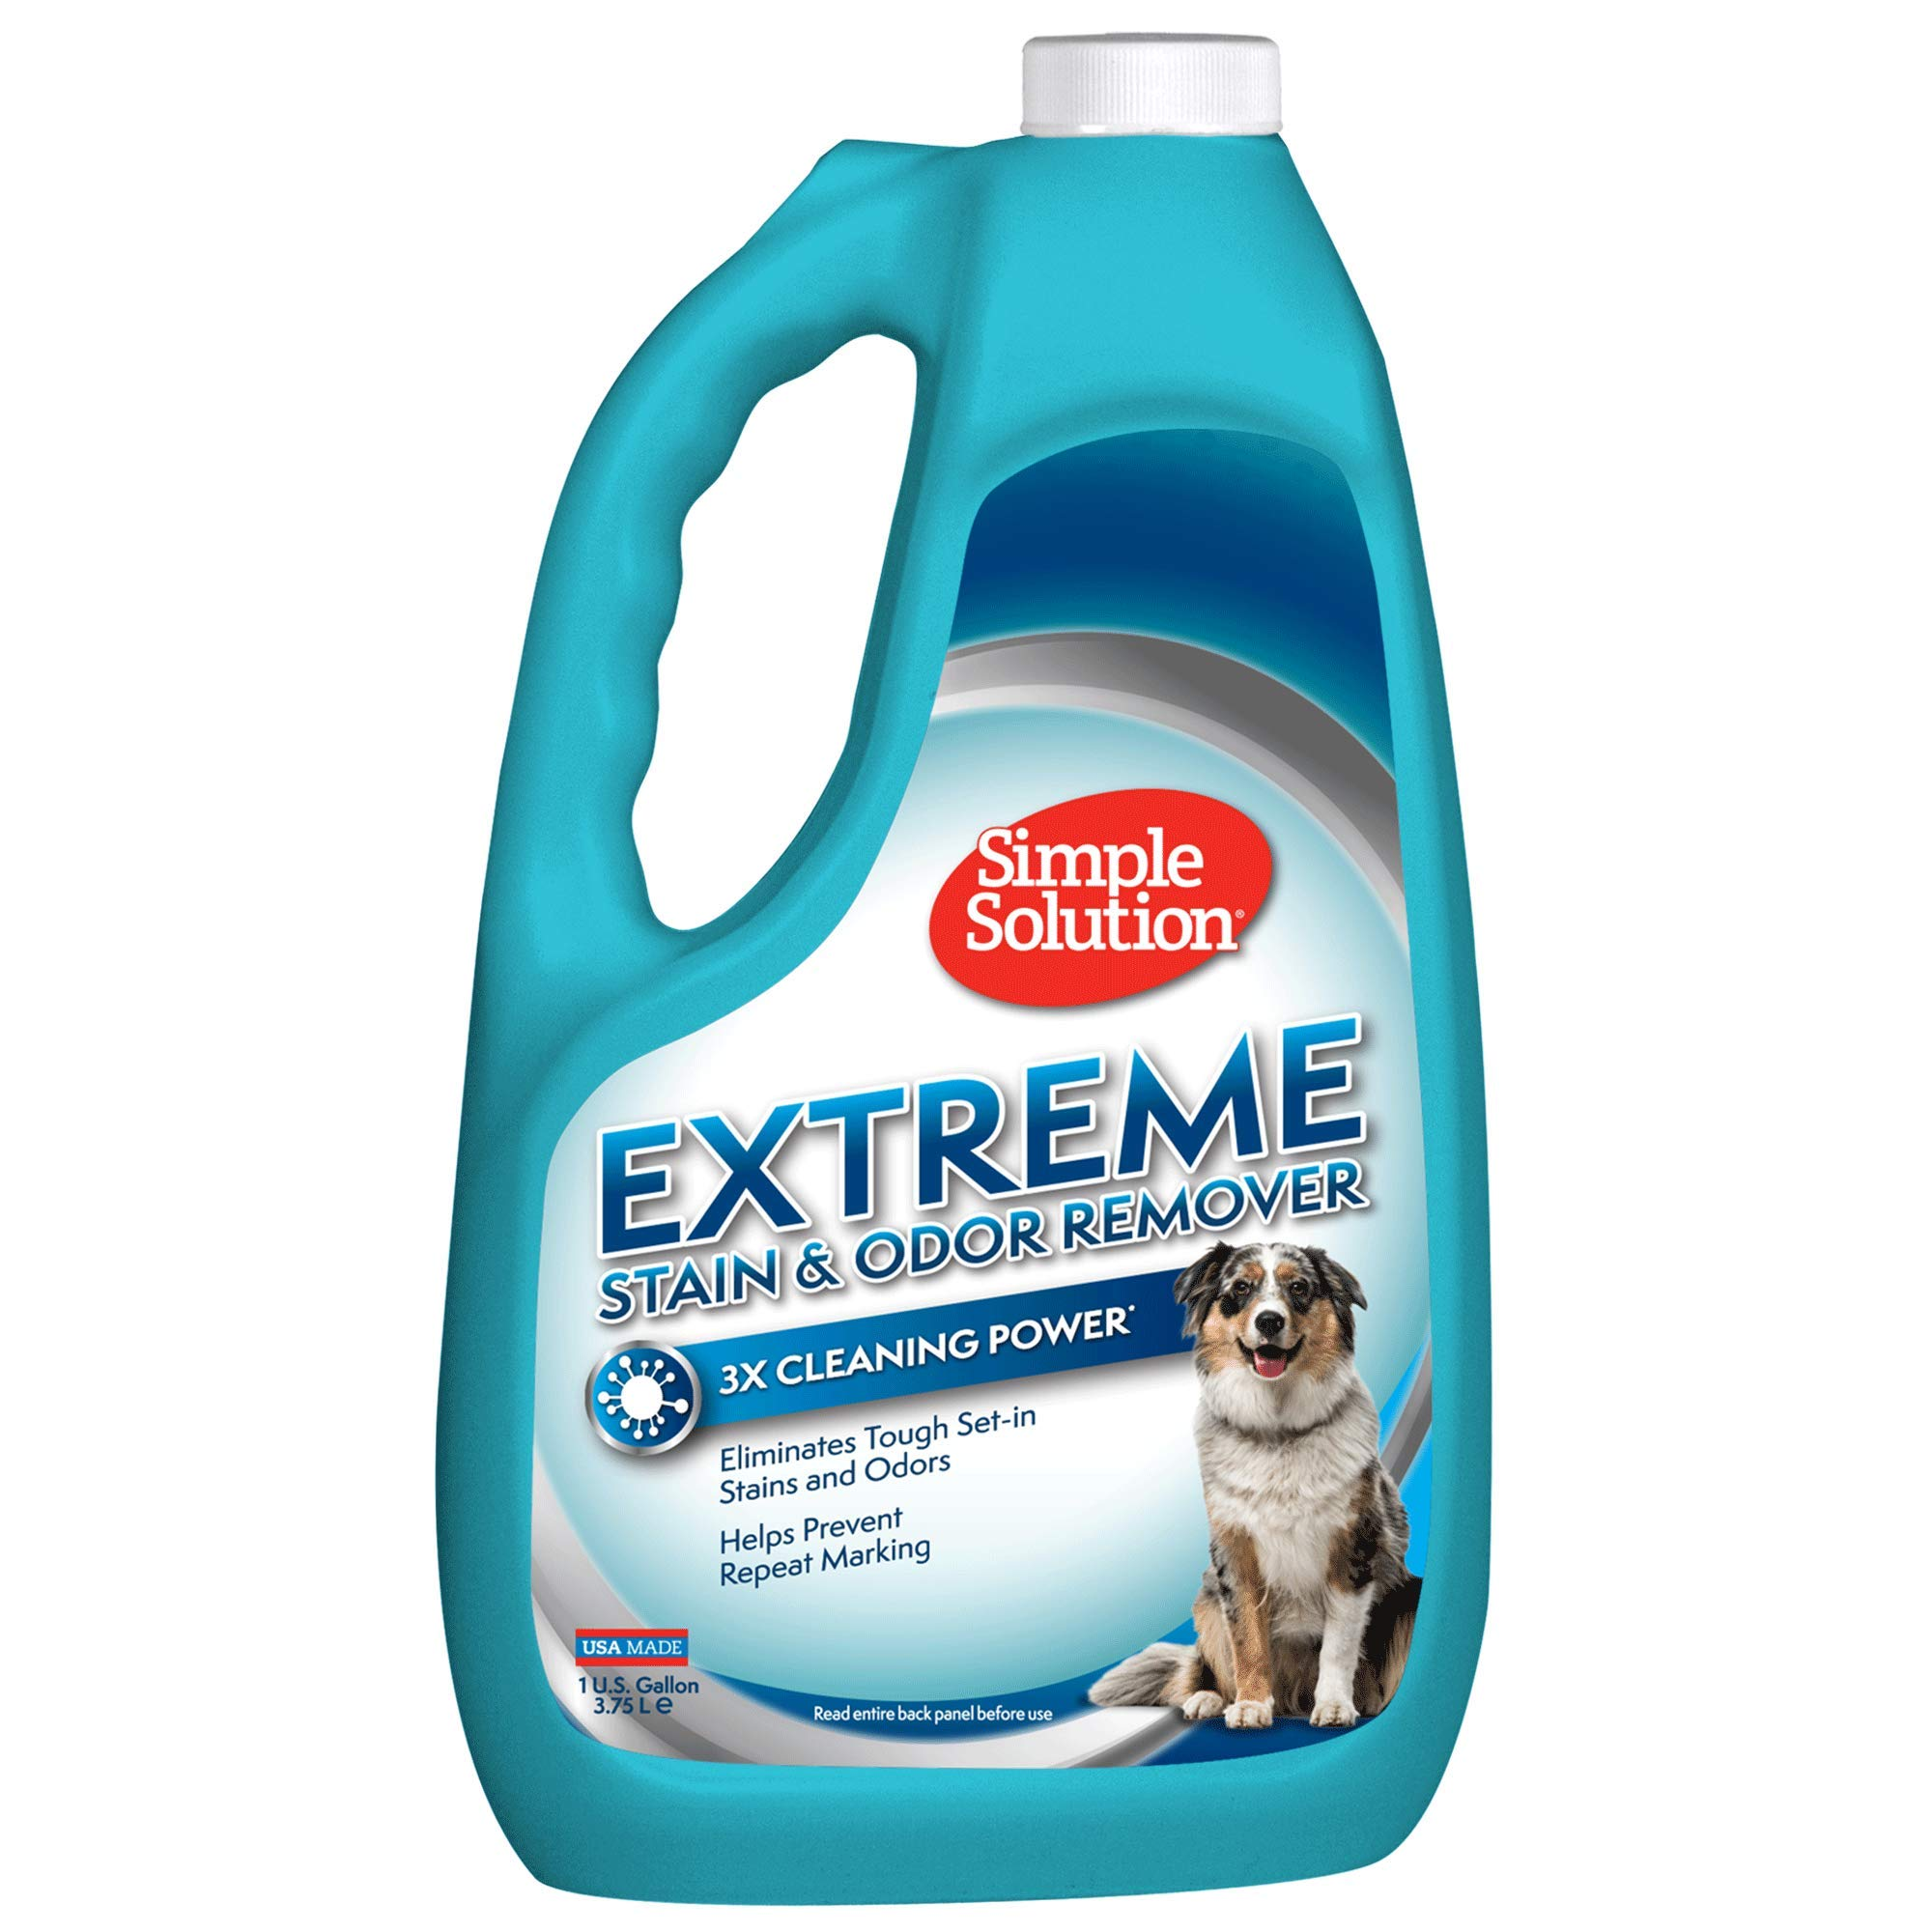 Simple Solution Extreme Stain + Odor Remover, 1 Gallon Refill by Simple Solution